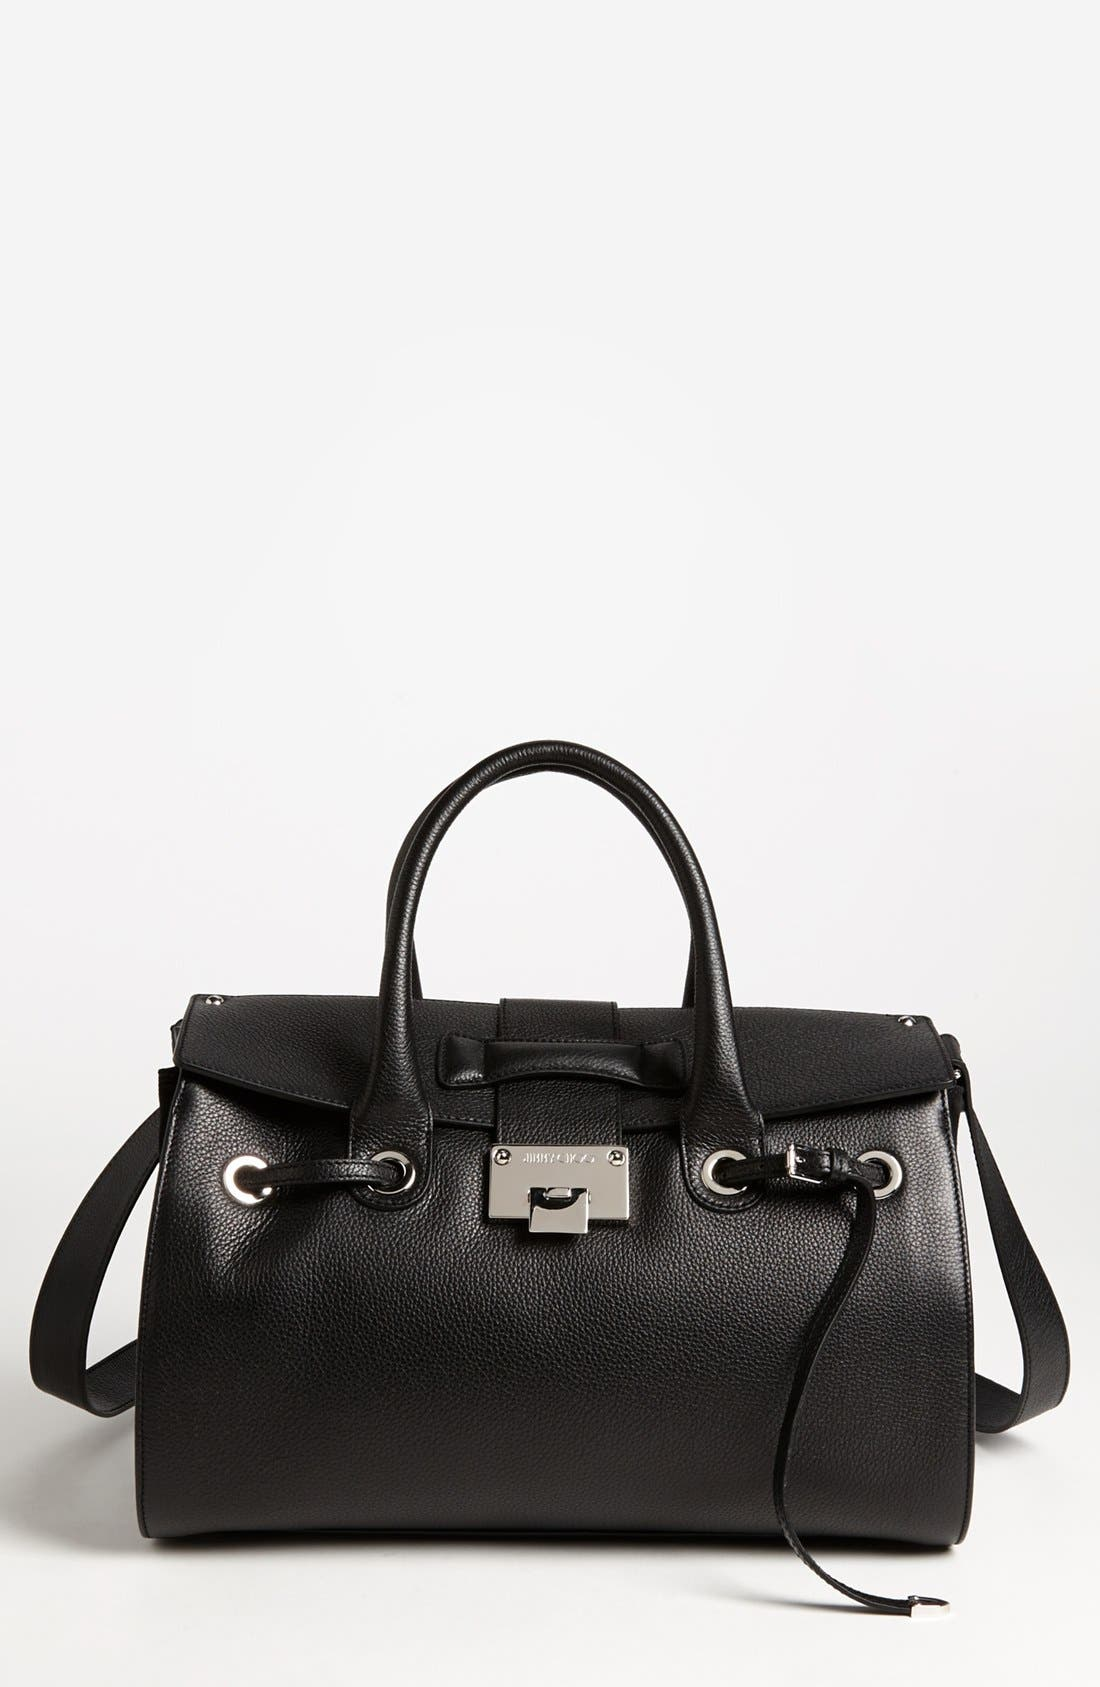 Alternate Image 1 Selected - Jimmy Choo 'Rosa' Leather Satchel